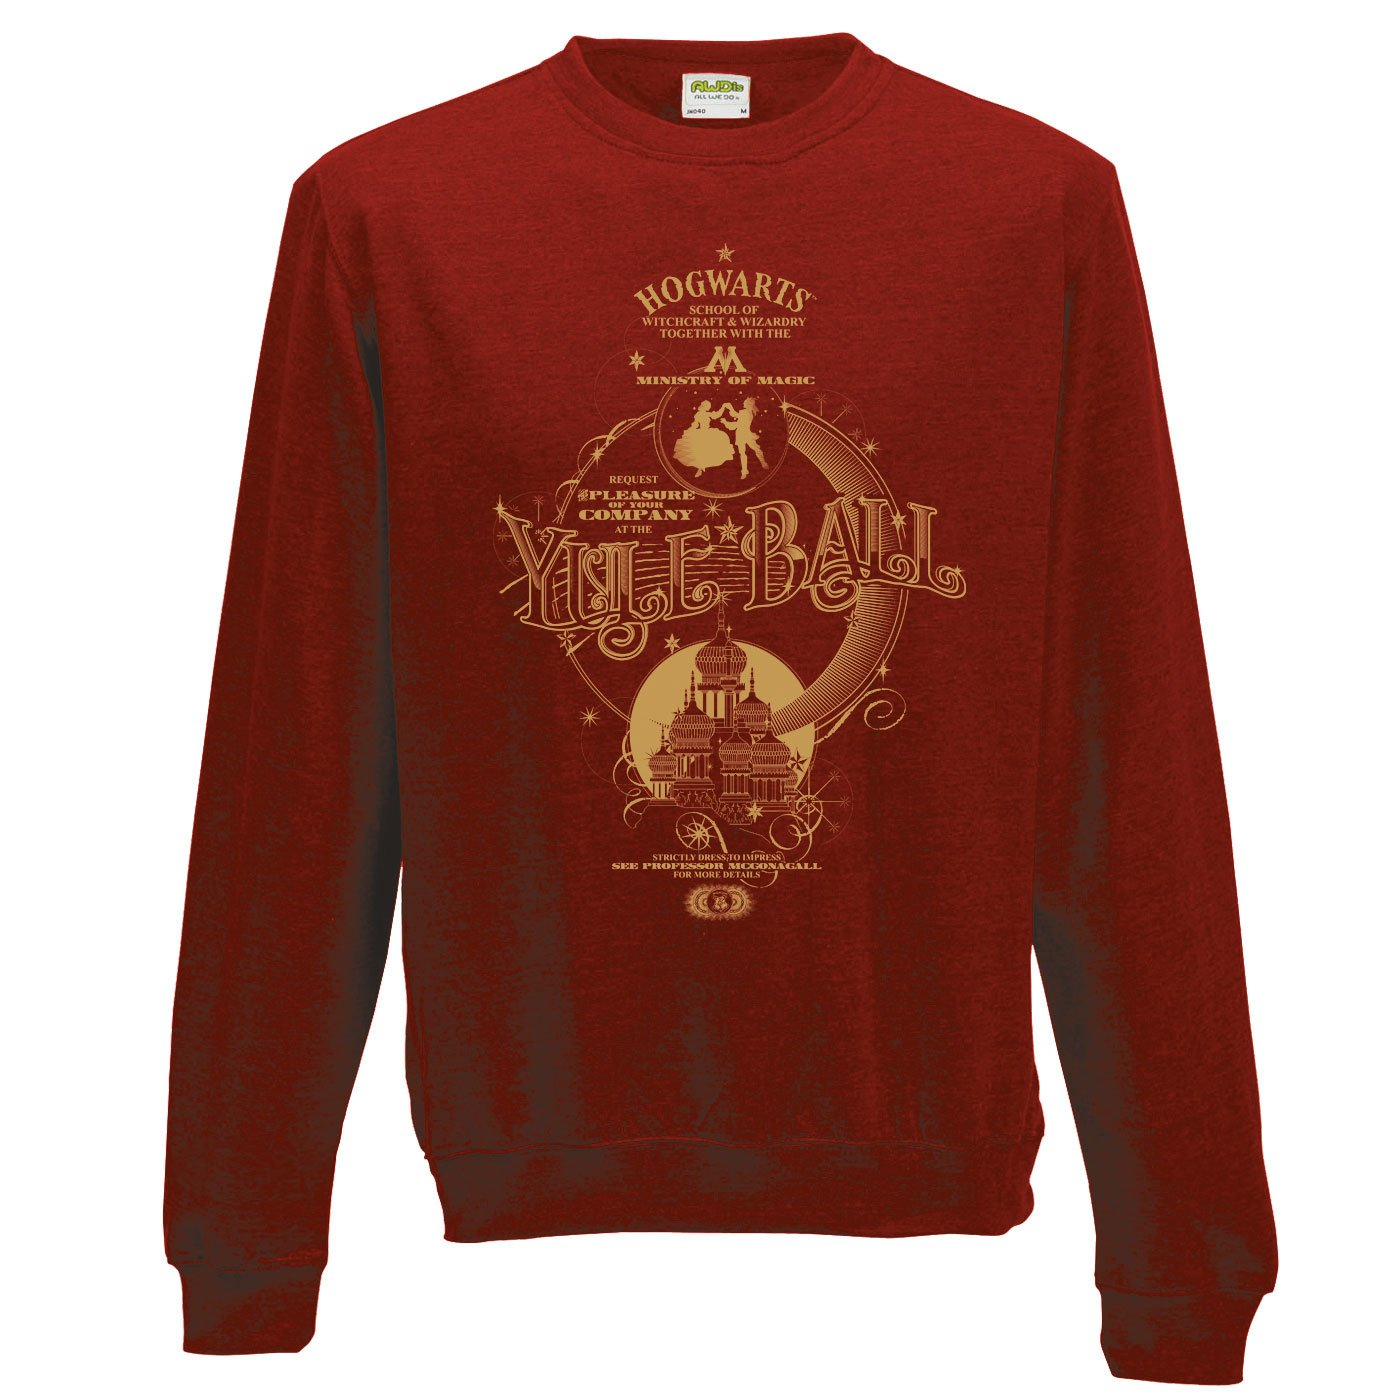 Harry Potter Sweatshirt Yule Ball Size XL